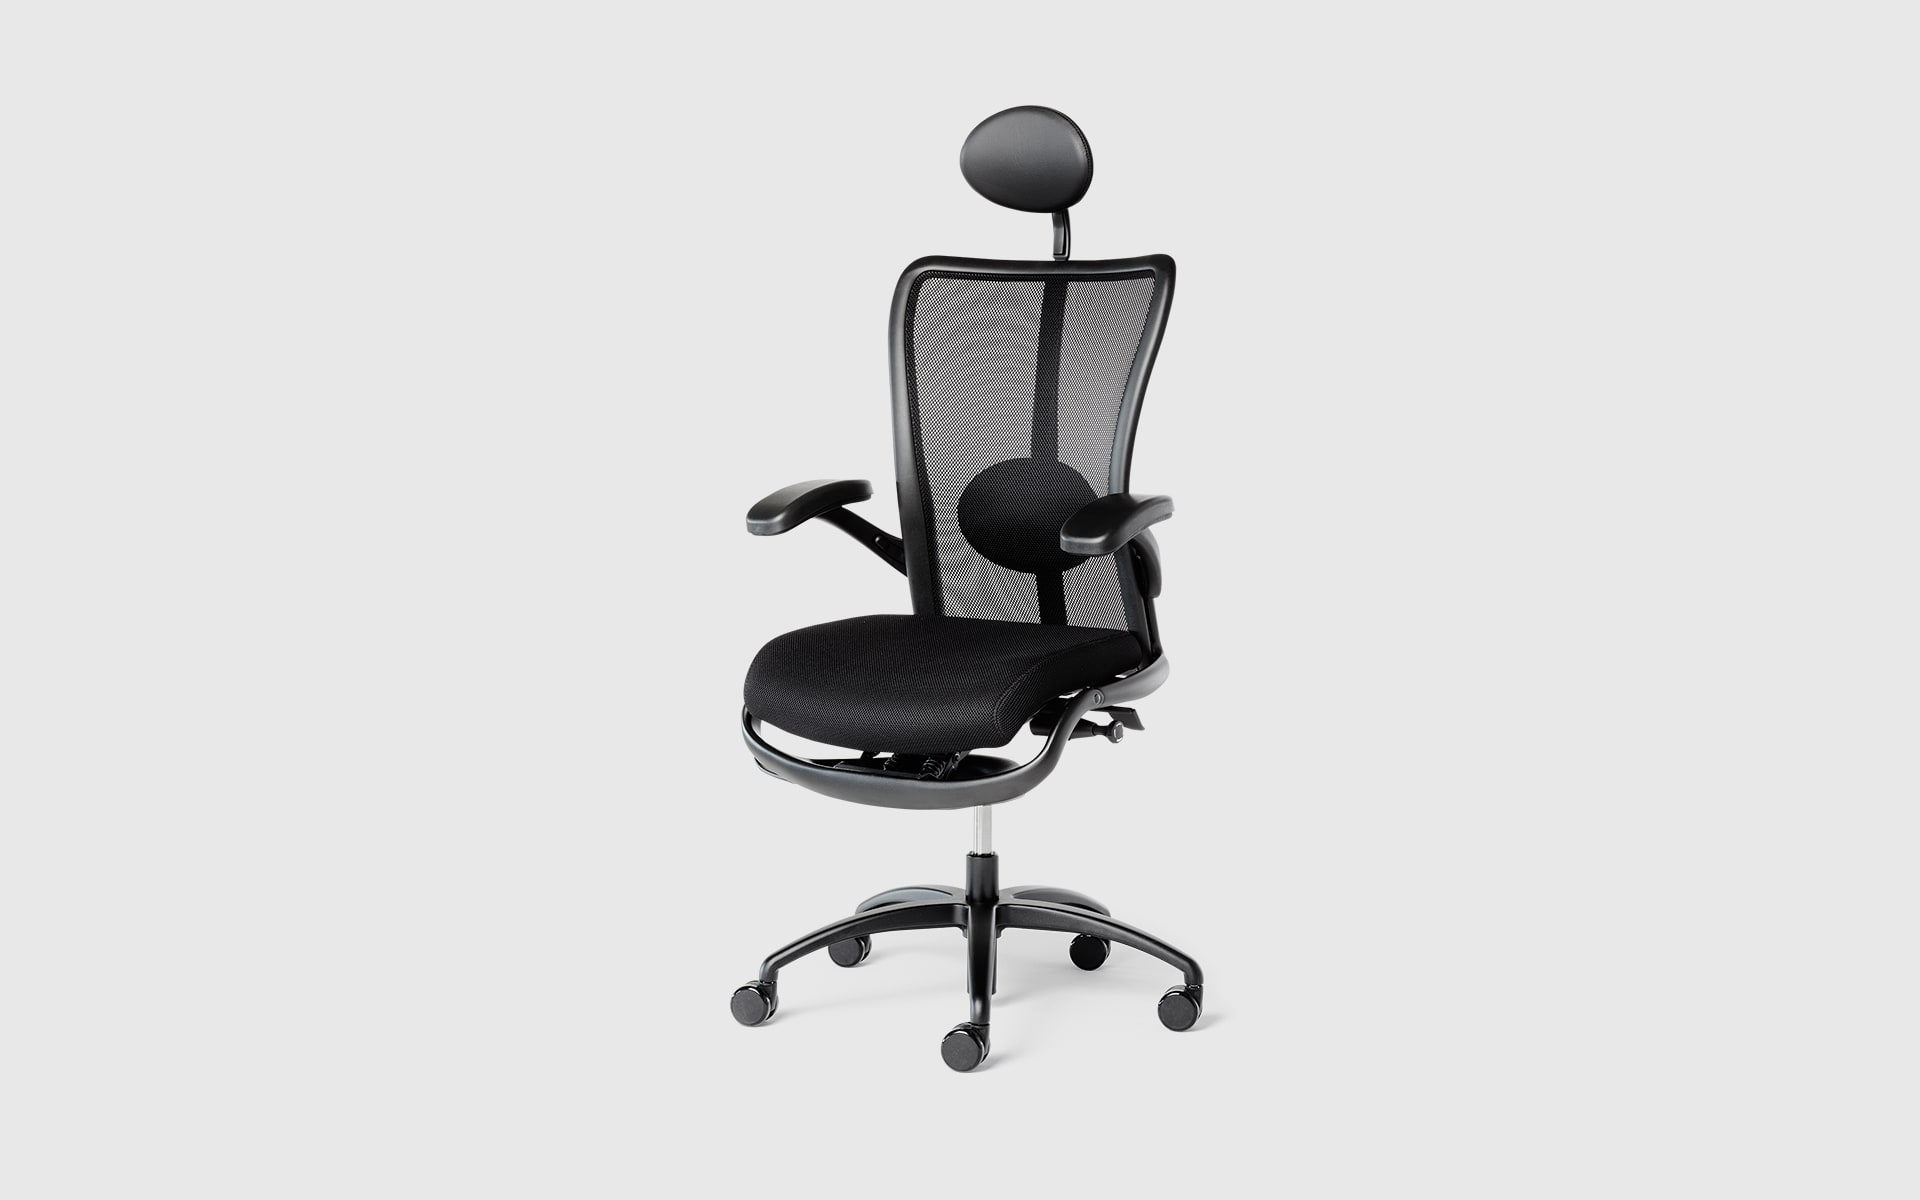 K+N Skye swivel chair by ITO Design in black